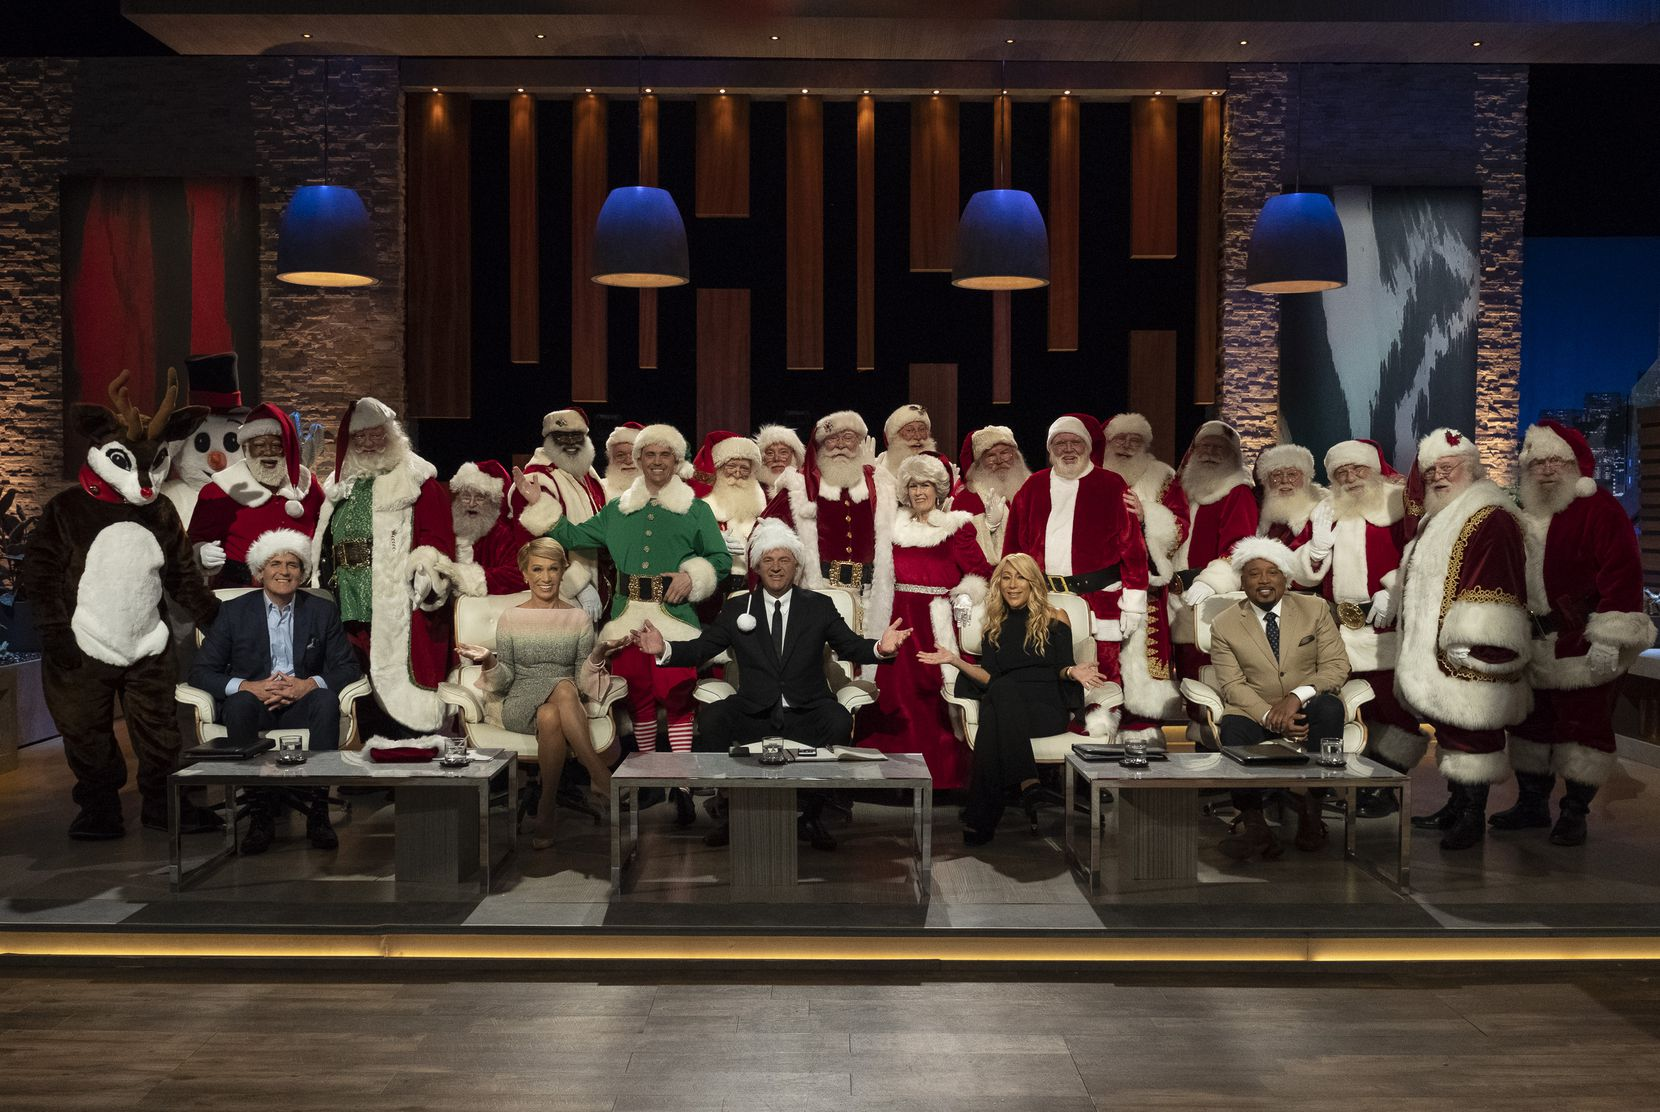 Mitch Allen hired 17 Santas, a Mrs. Claus, a snowman and reindeer for his Shark Tank pitch.